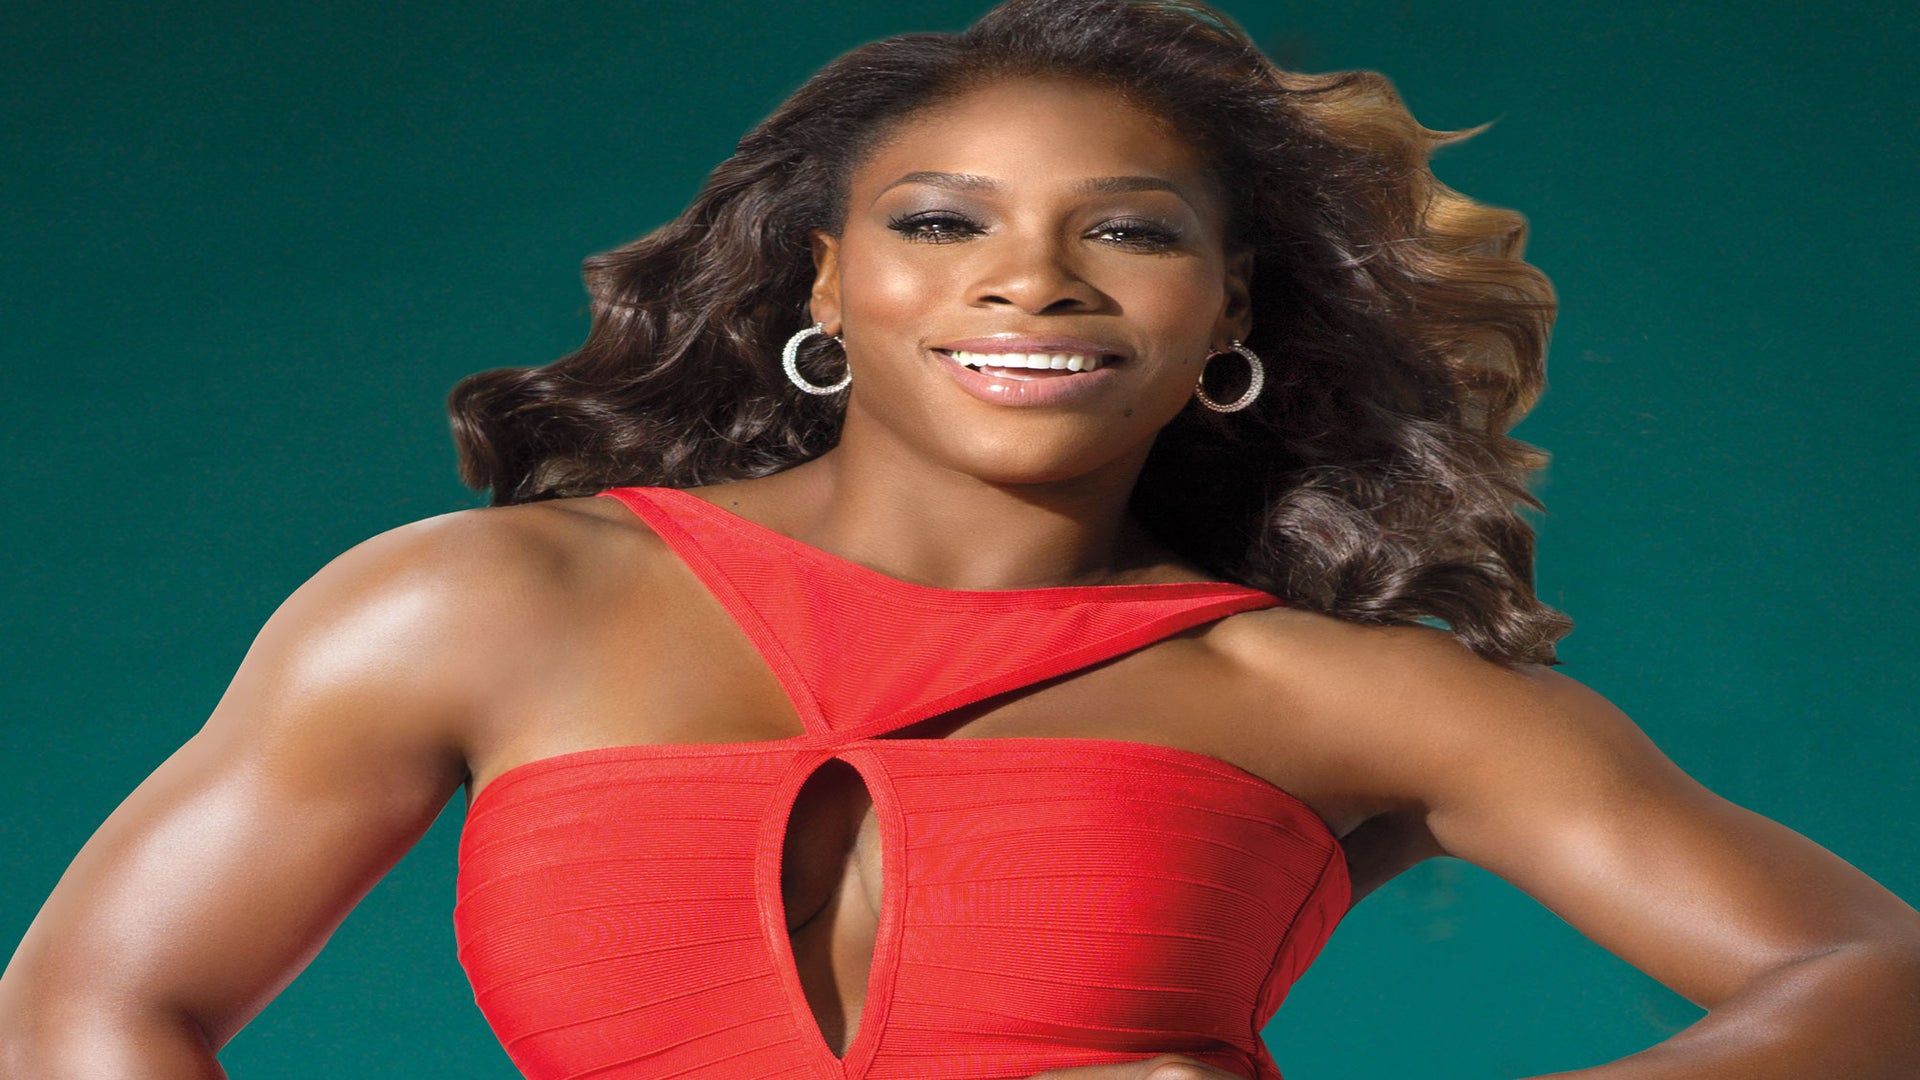 Serena Williams Sings 'I Touch Myself' To Raise Breast Cancer Awareness